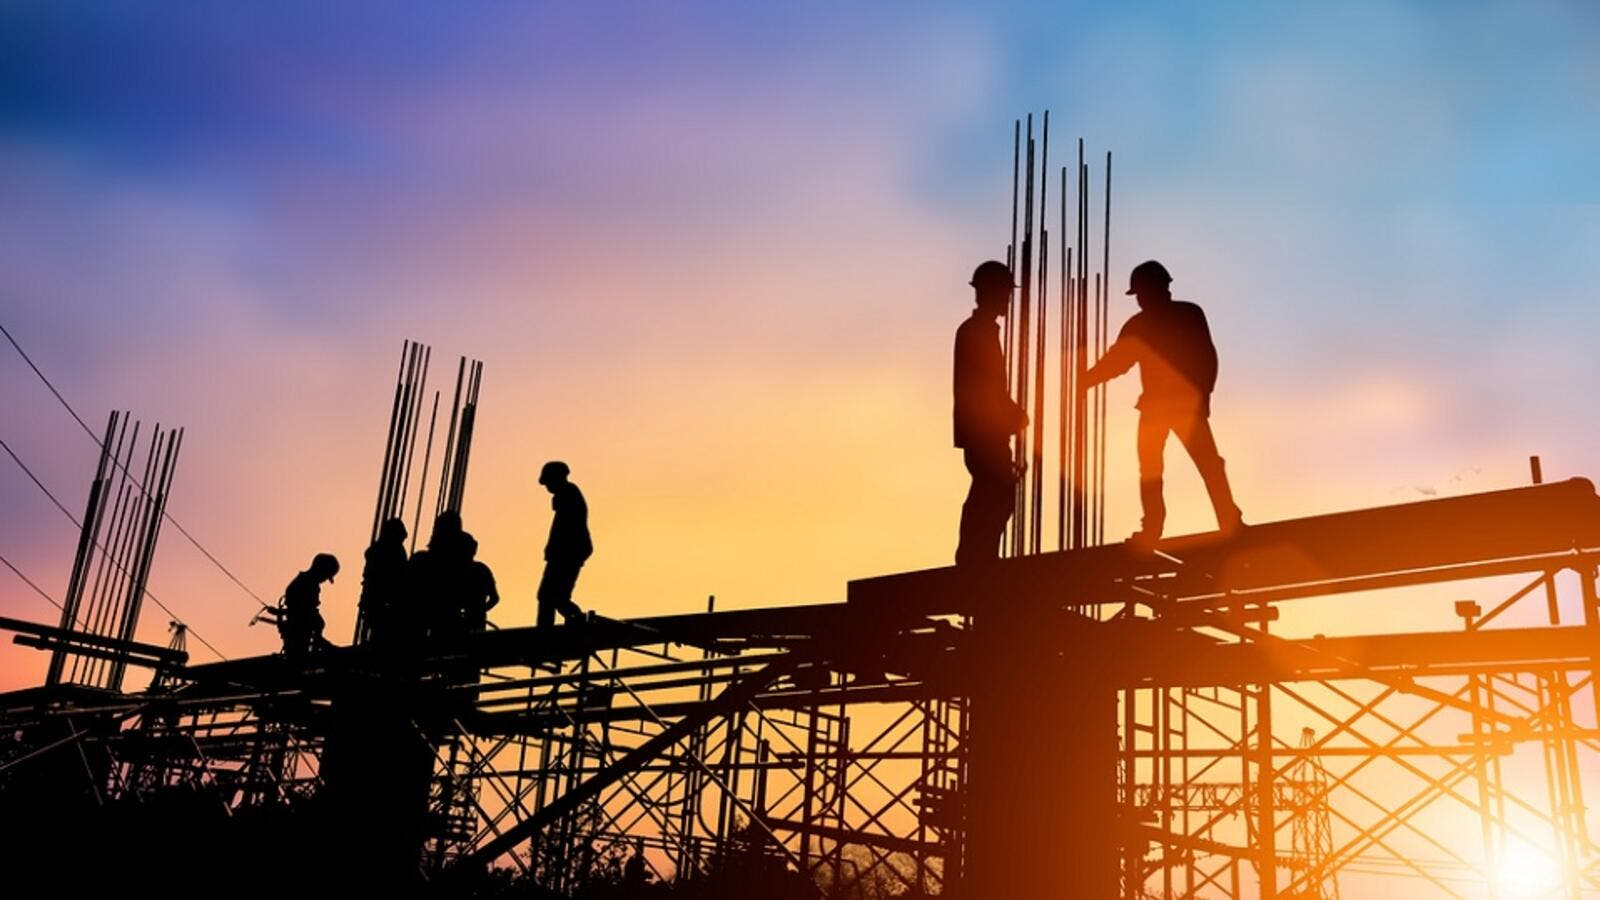 Healthy levels of growth in the construction sector have a direct impact on demand for the latest tools, hardware, materials and machinery across the region